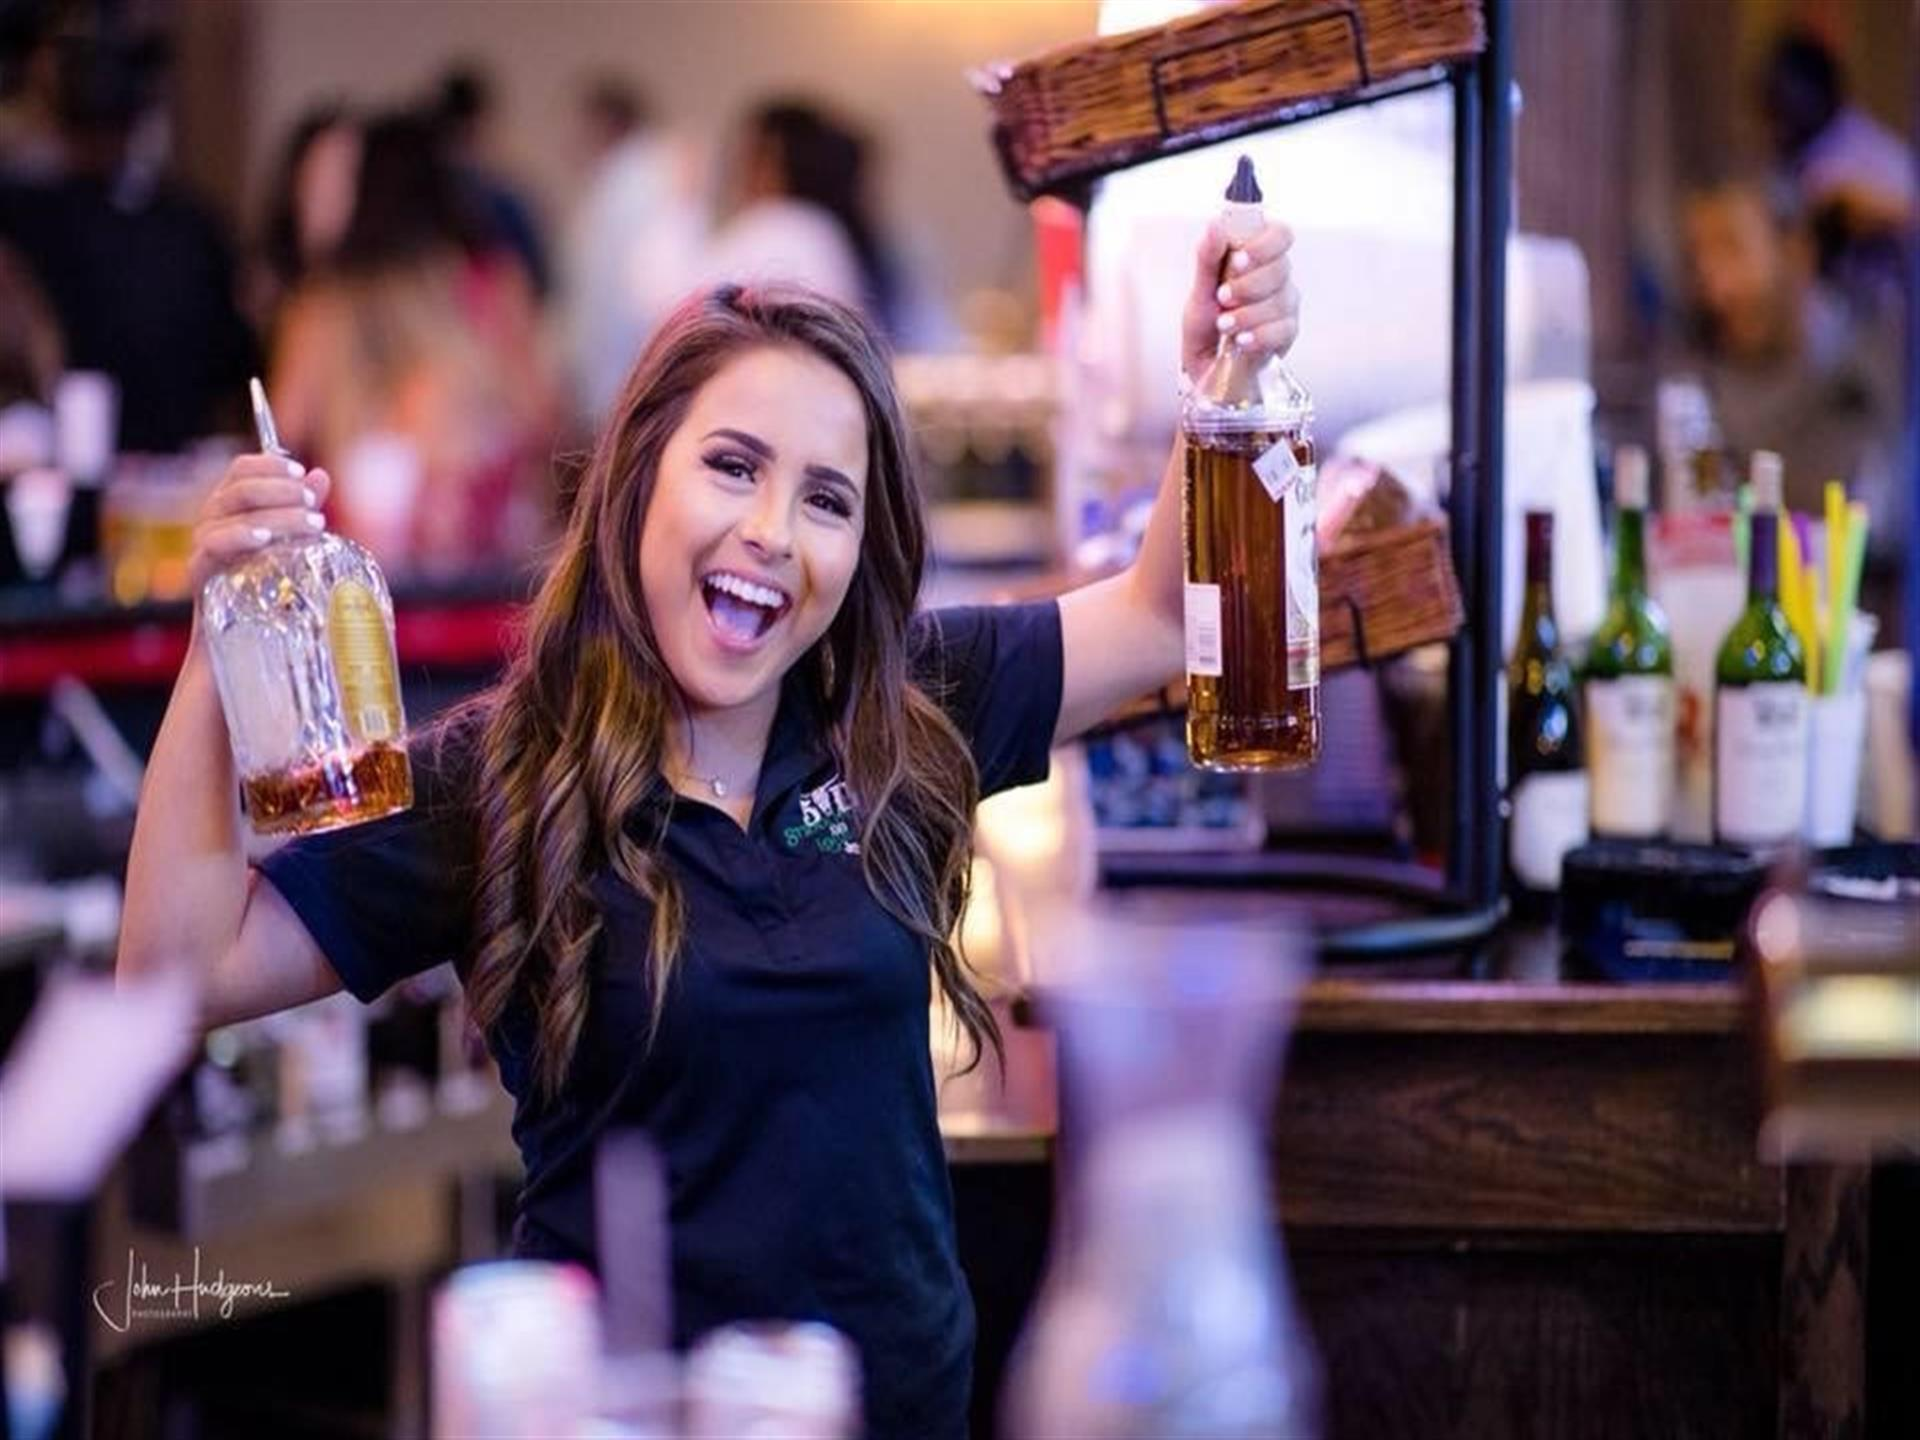 Bartender smiling and holding up a bottle of alcohol in each hand